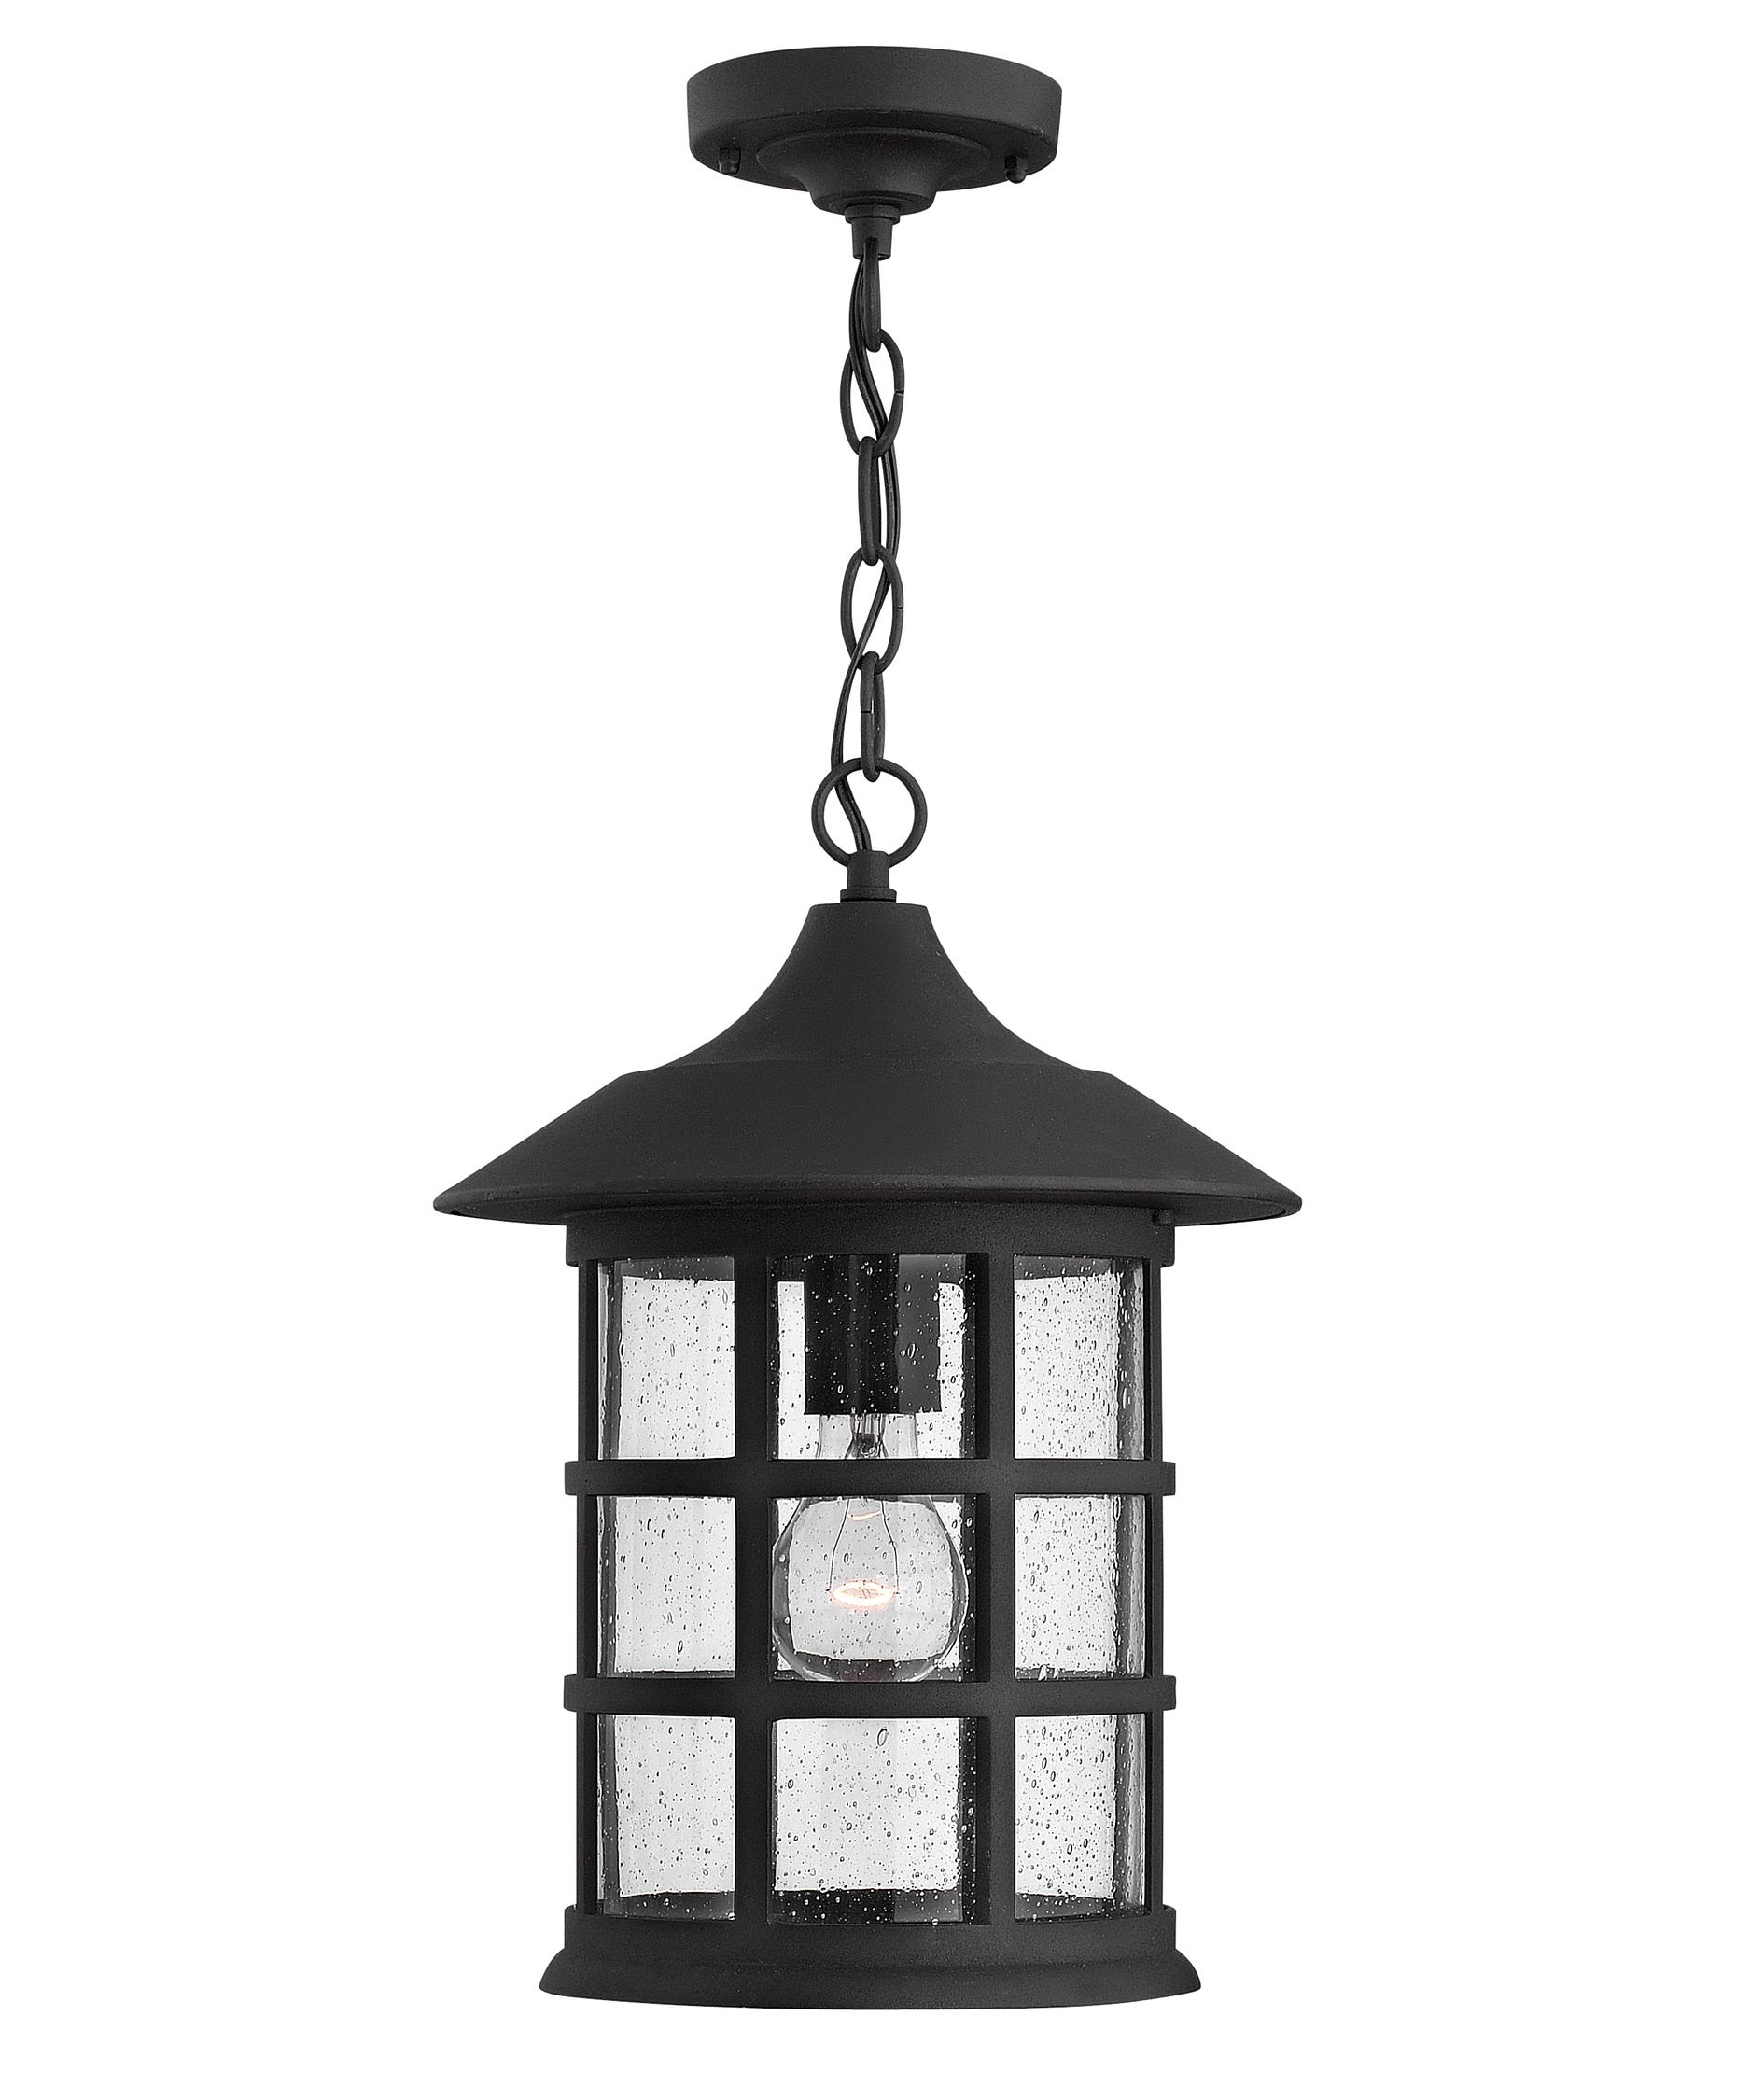 Best And Newest Hinkley Lighting 1802 Freeport 10 Inch Wide 1 Light Outdoor Hanging Regarding White Outdoor Hanging Lights (Gallery 9 of 20)